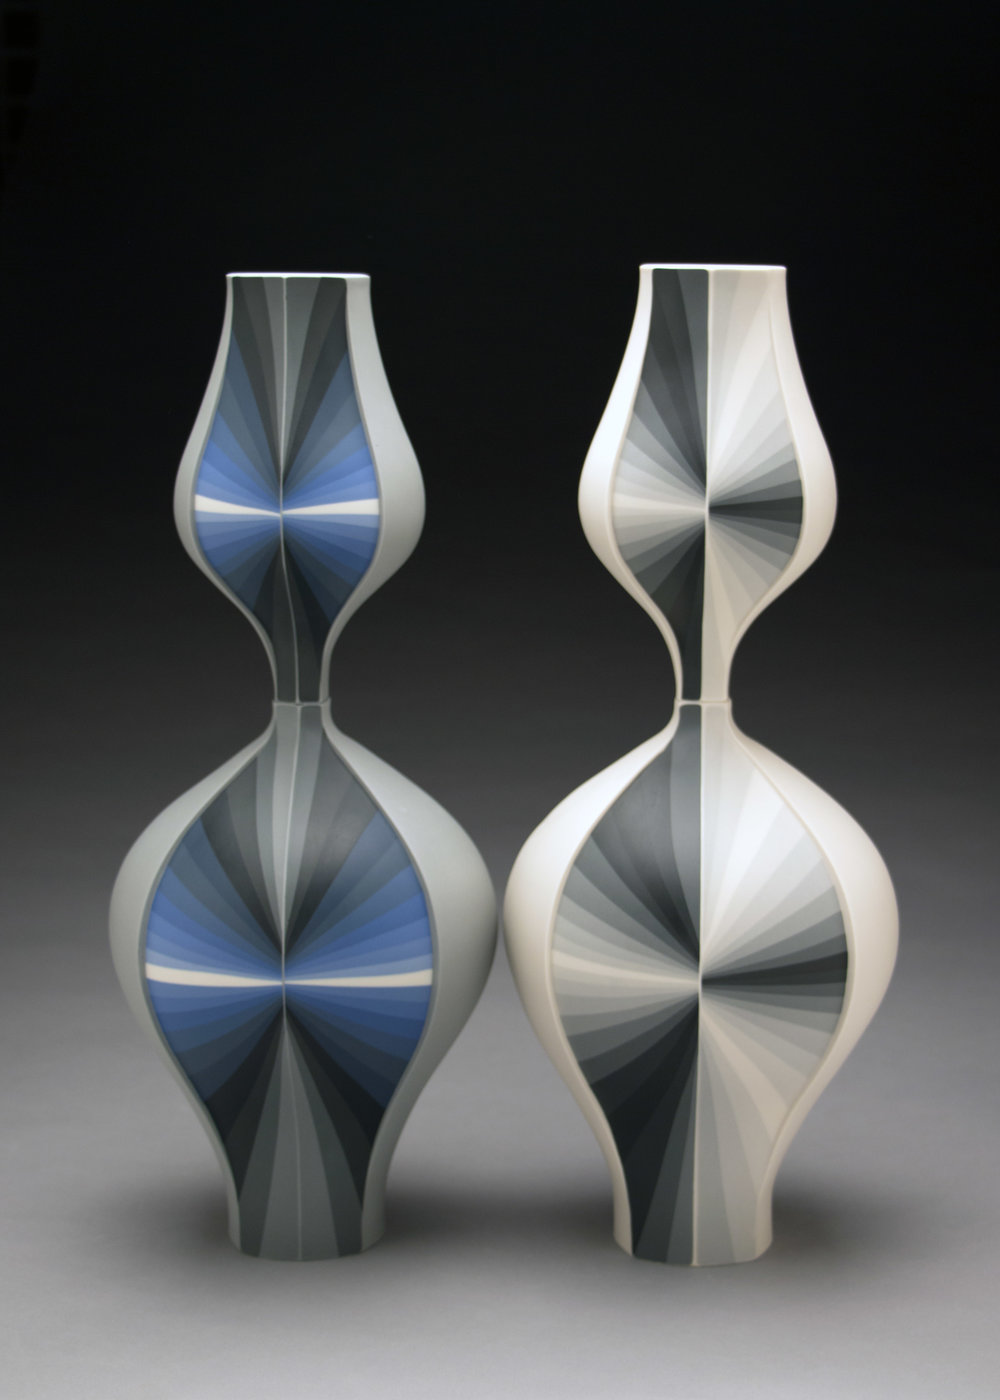 Peter Pincus,  Blue Contrasting Gradient Vessel  and  Grey Contrasting Gradient Vessel  (Side A), 2018, colored porcelain, gold luster, 20 x 8 x 8 inches, $4200. (each)